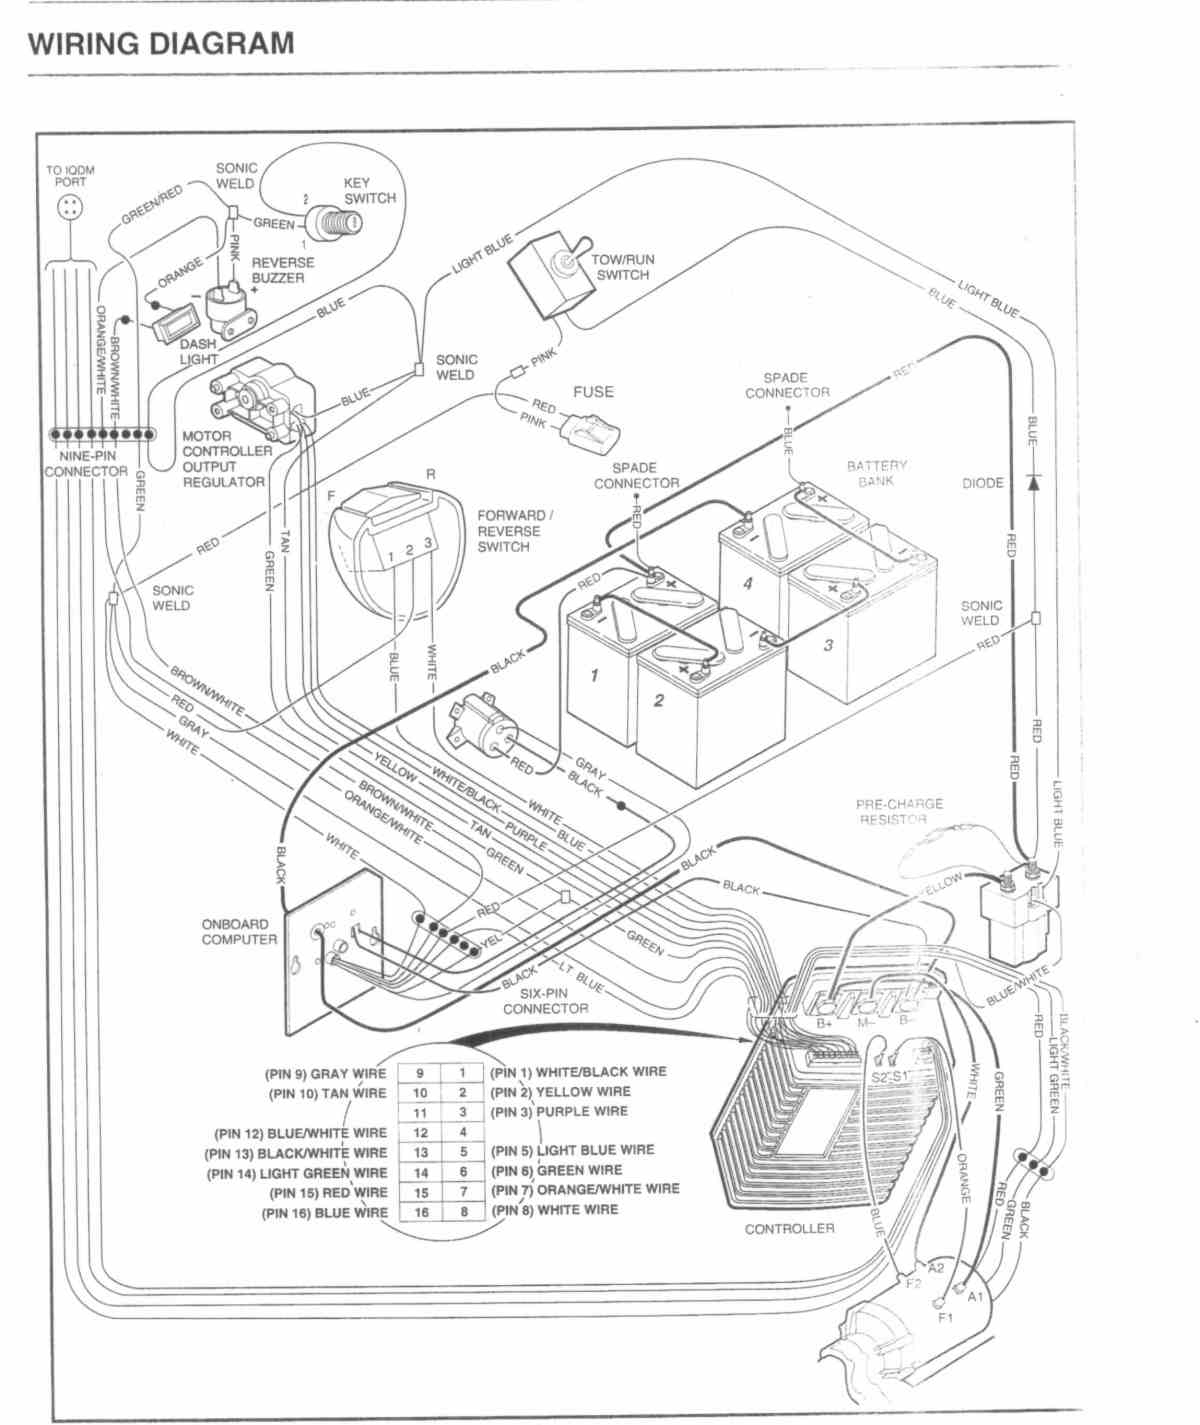 club car precedent wiring diagram for lights wiring online diagram36 Volt Club Car Wiring Diagram Lights #13